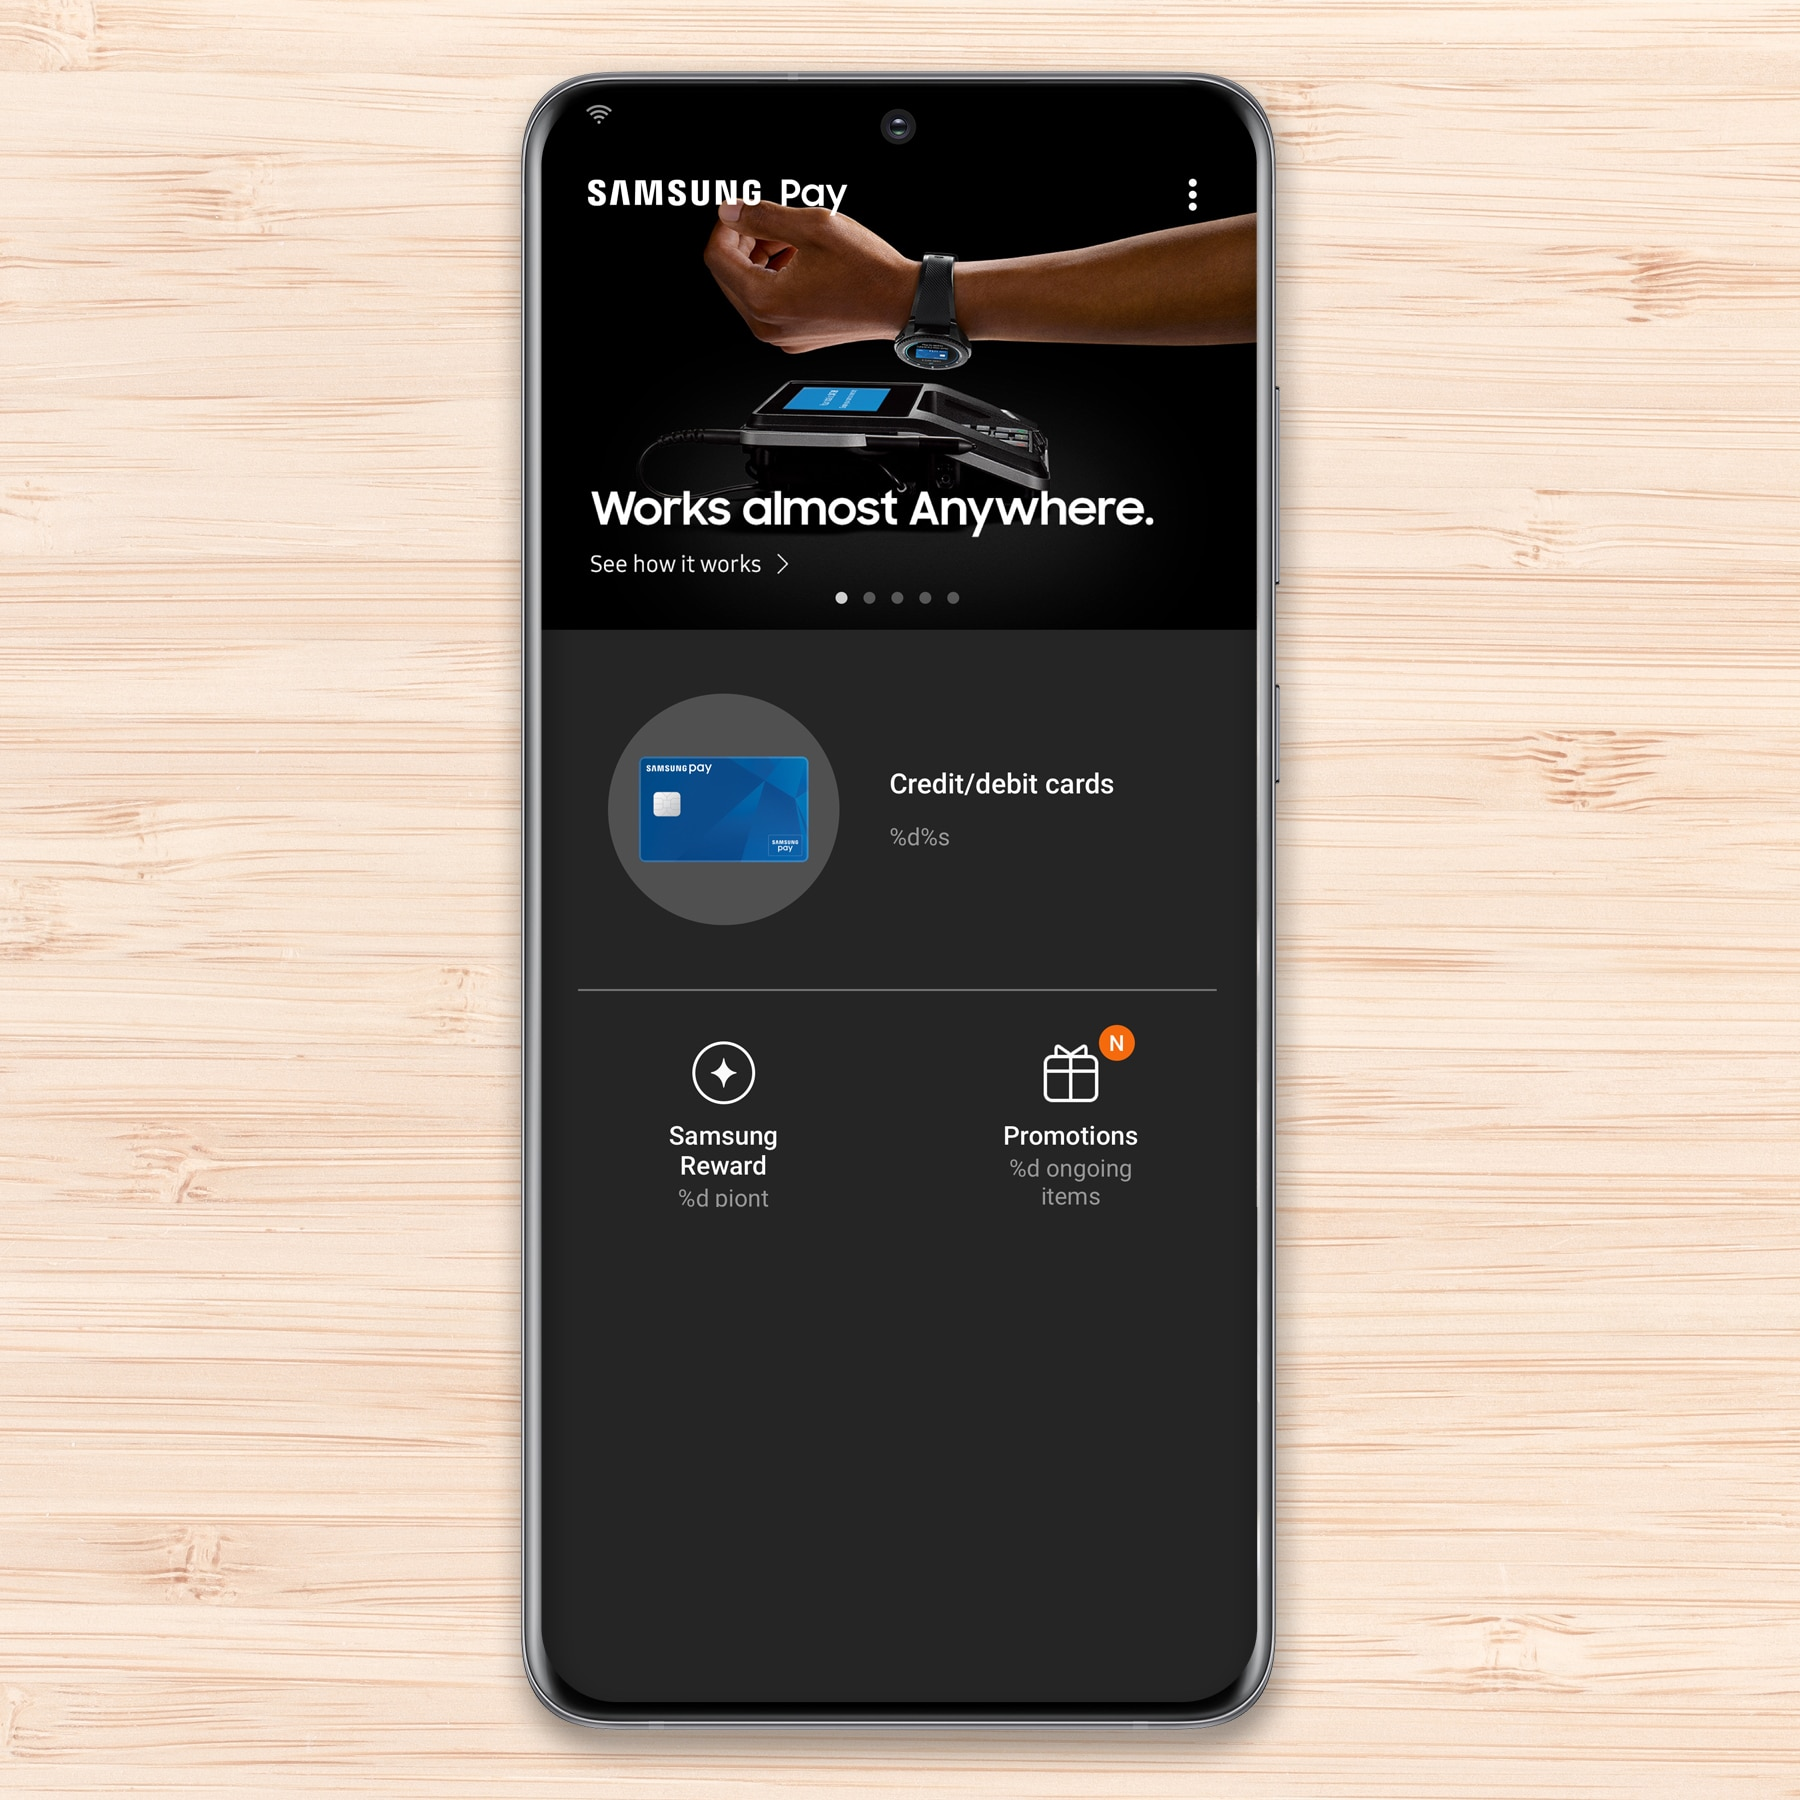 Setting up Samsung Pay on a phone